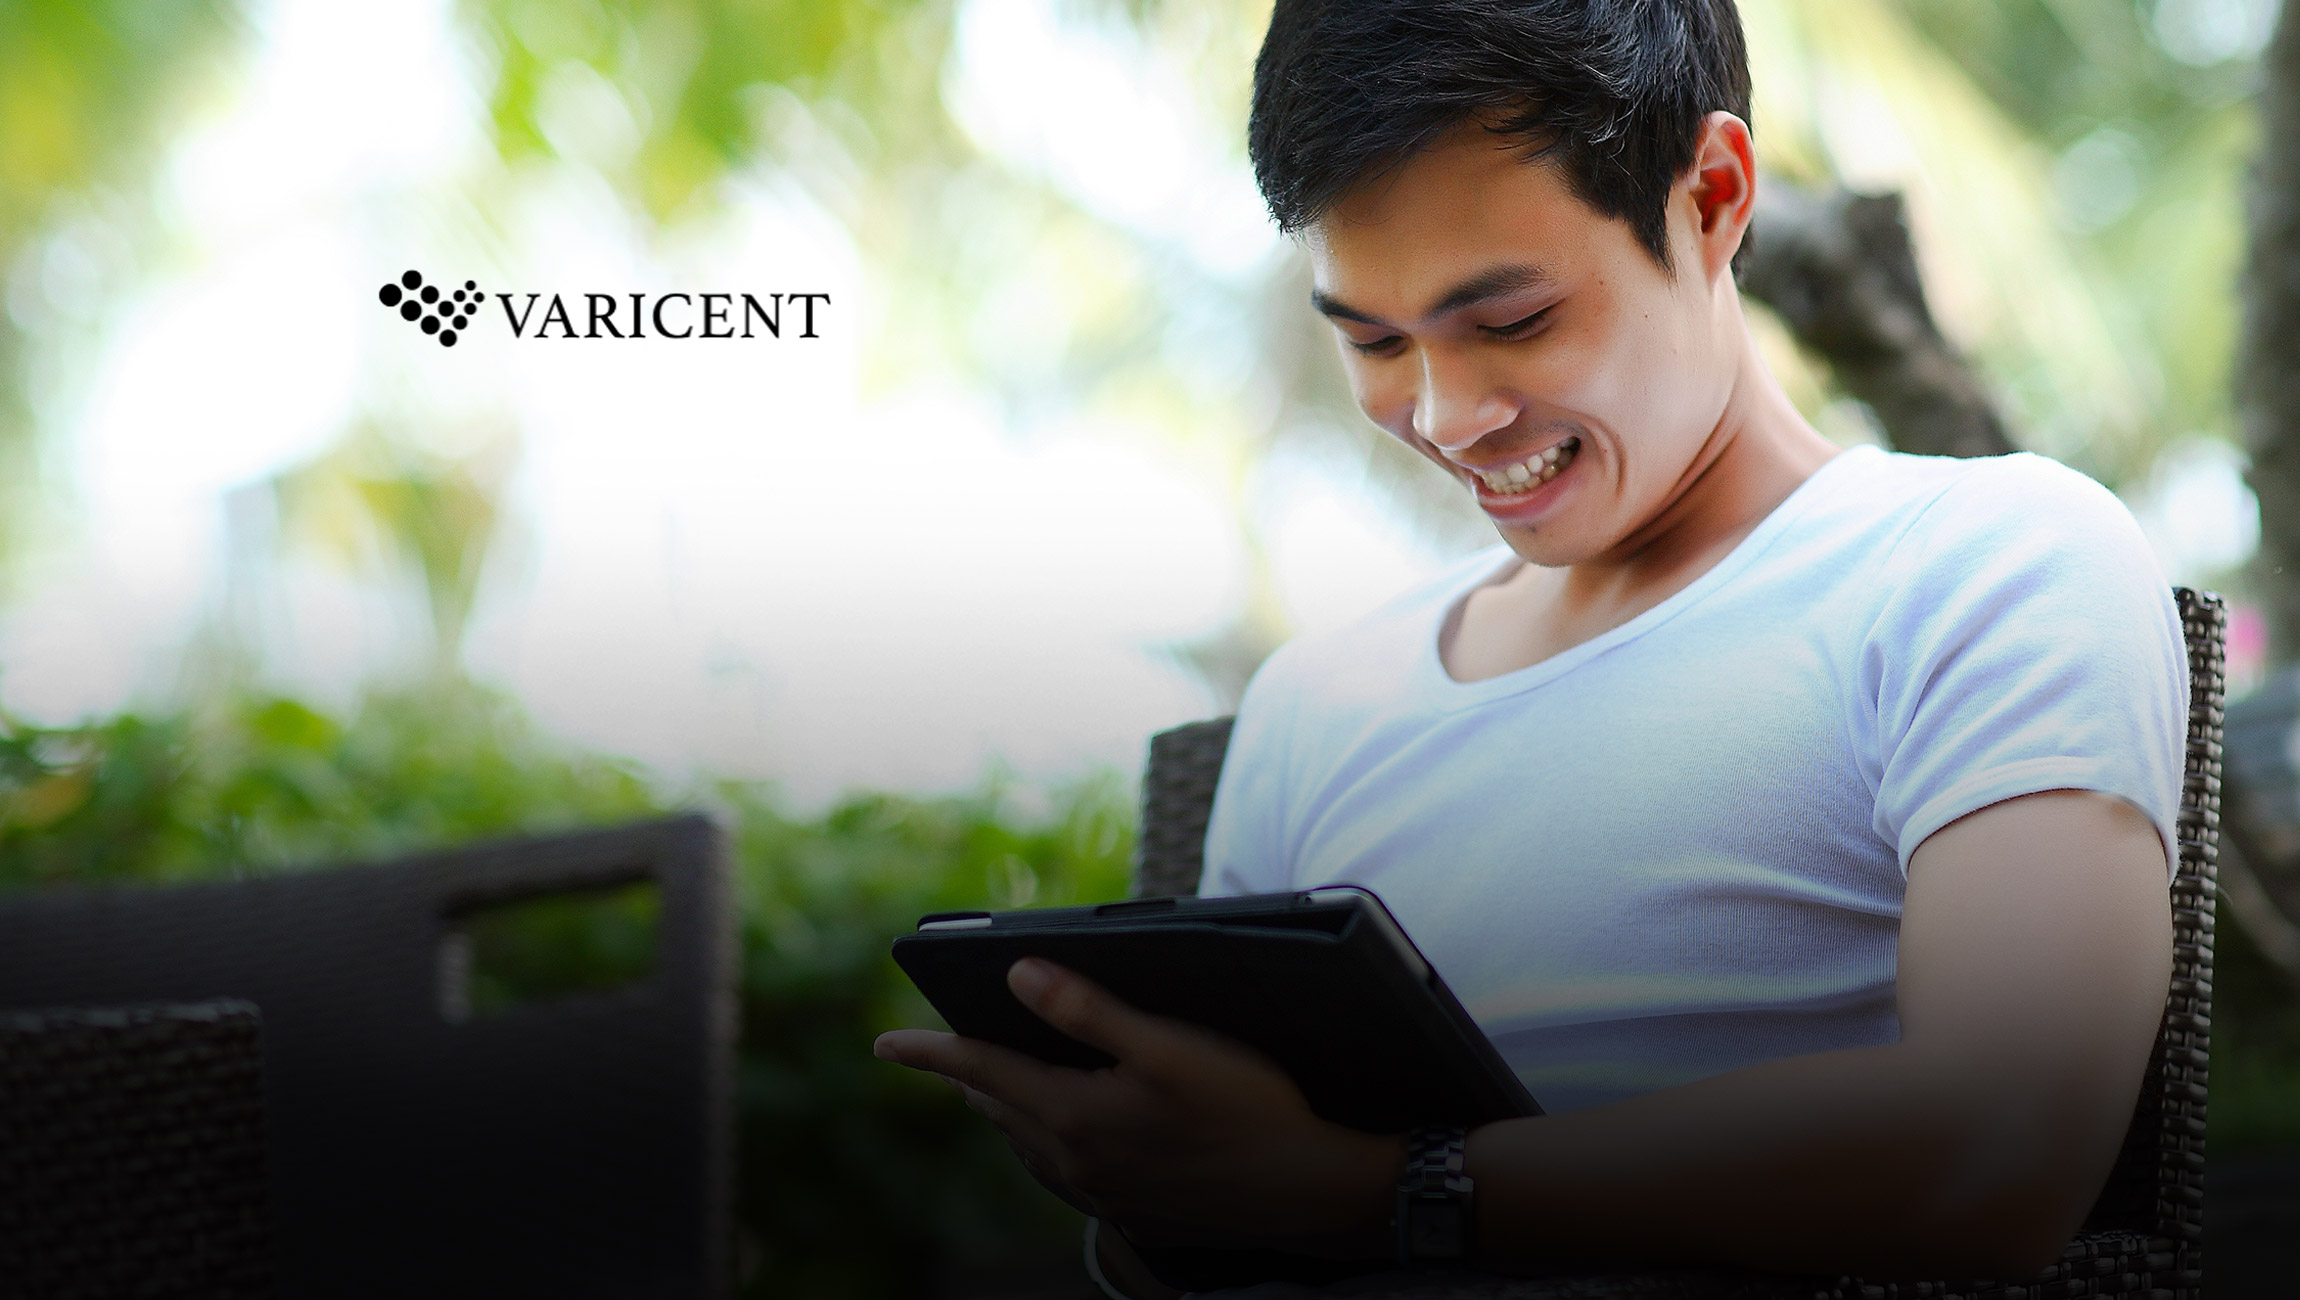 Varicent E.D.G.E. Scholarship Program is Now Accepting Applications